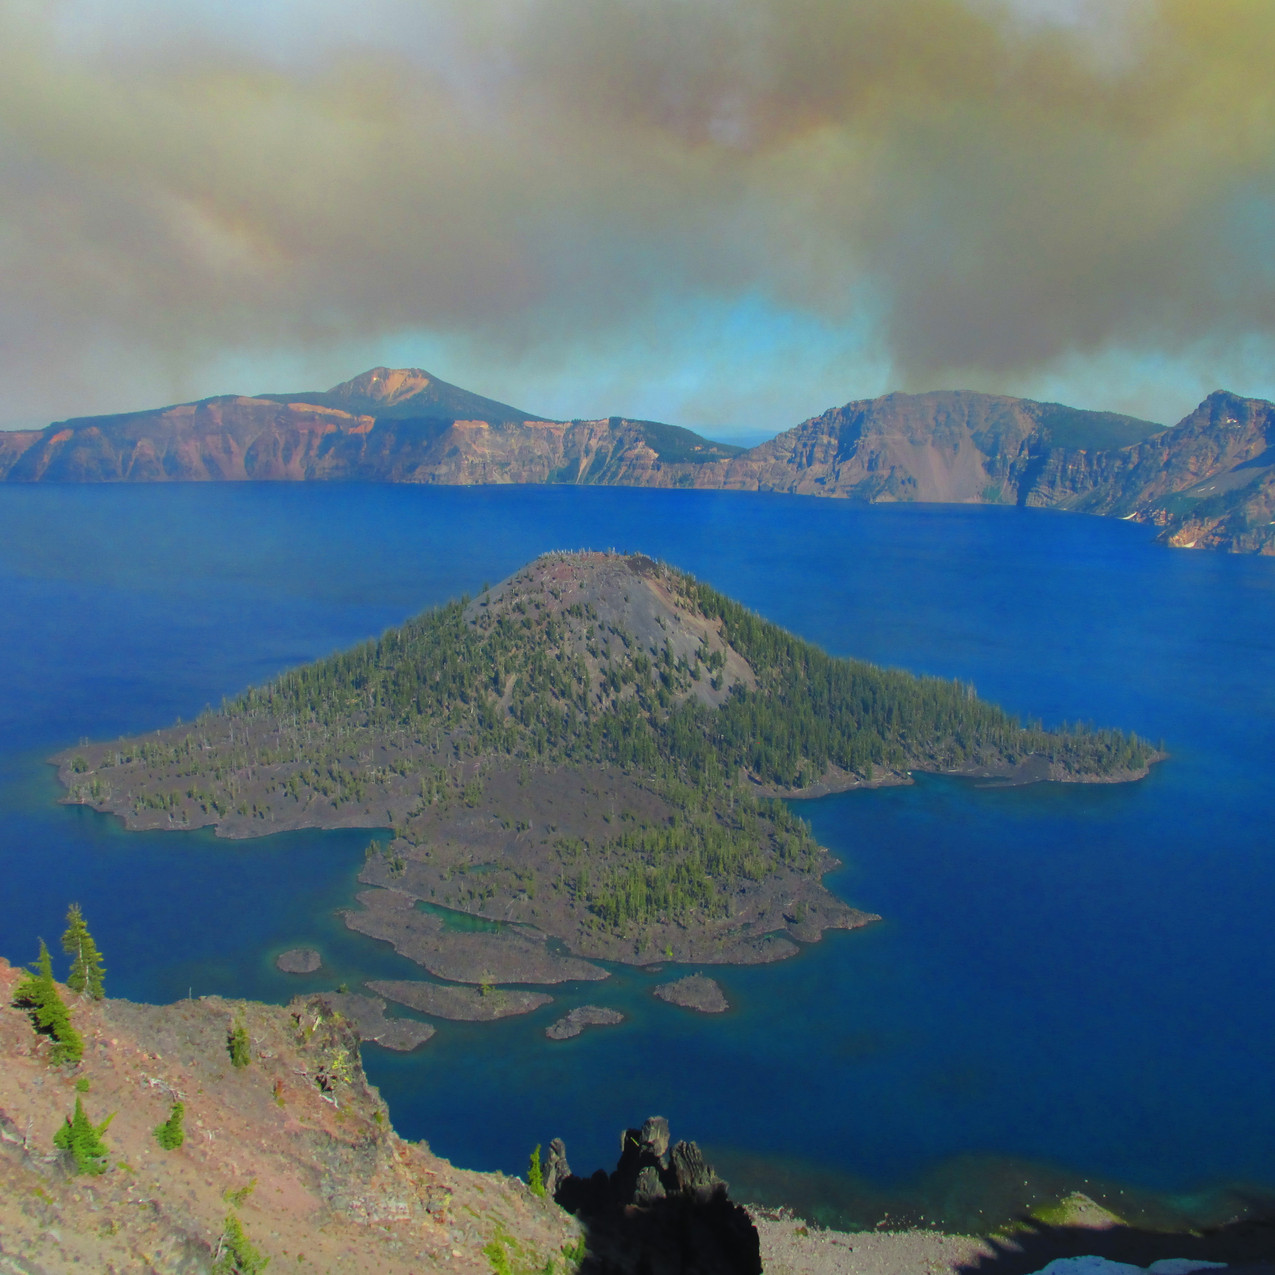 Our views of Crater Lake were different from most people due to the smoke.